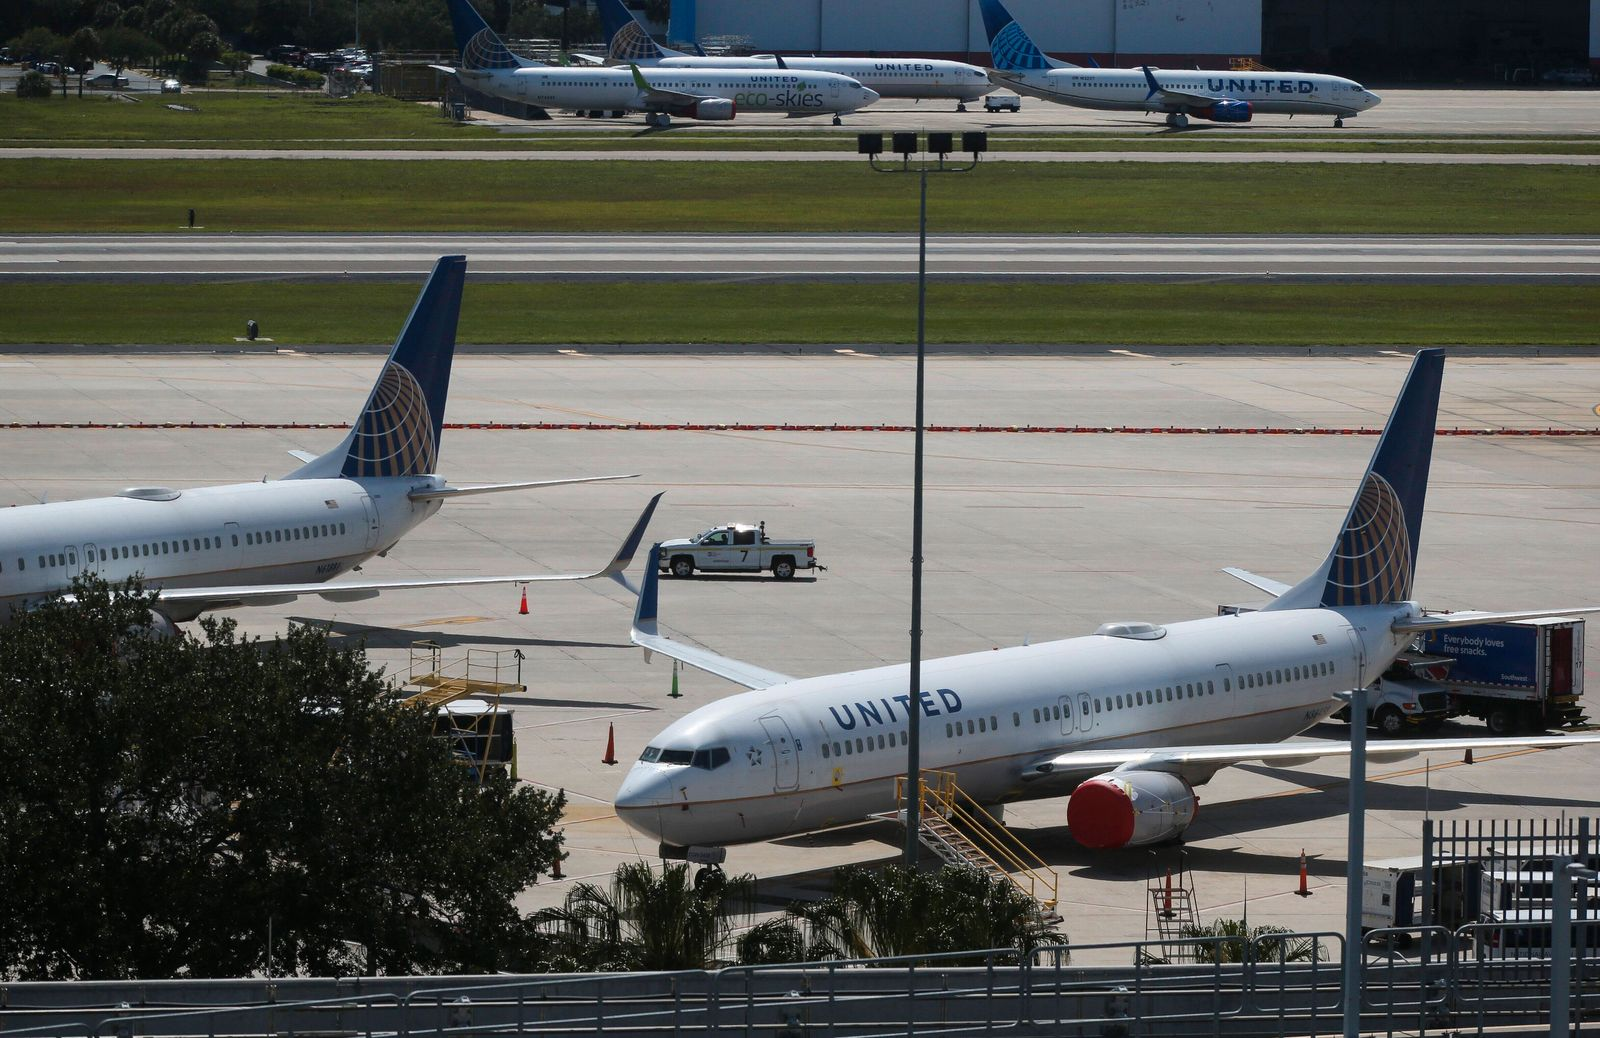 May 7, 2020, Tampa, Florida, USA: United Airlines planes on the tarmac at Tampa International Airport on Thursday, May 7